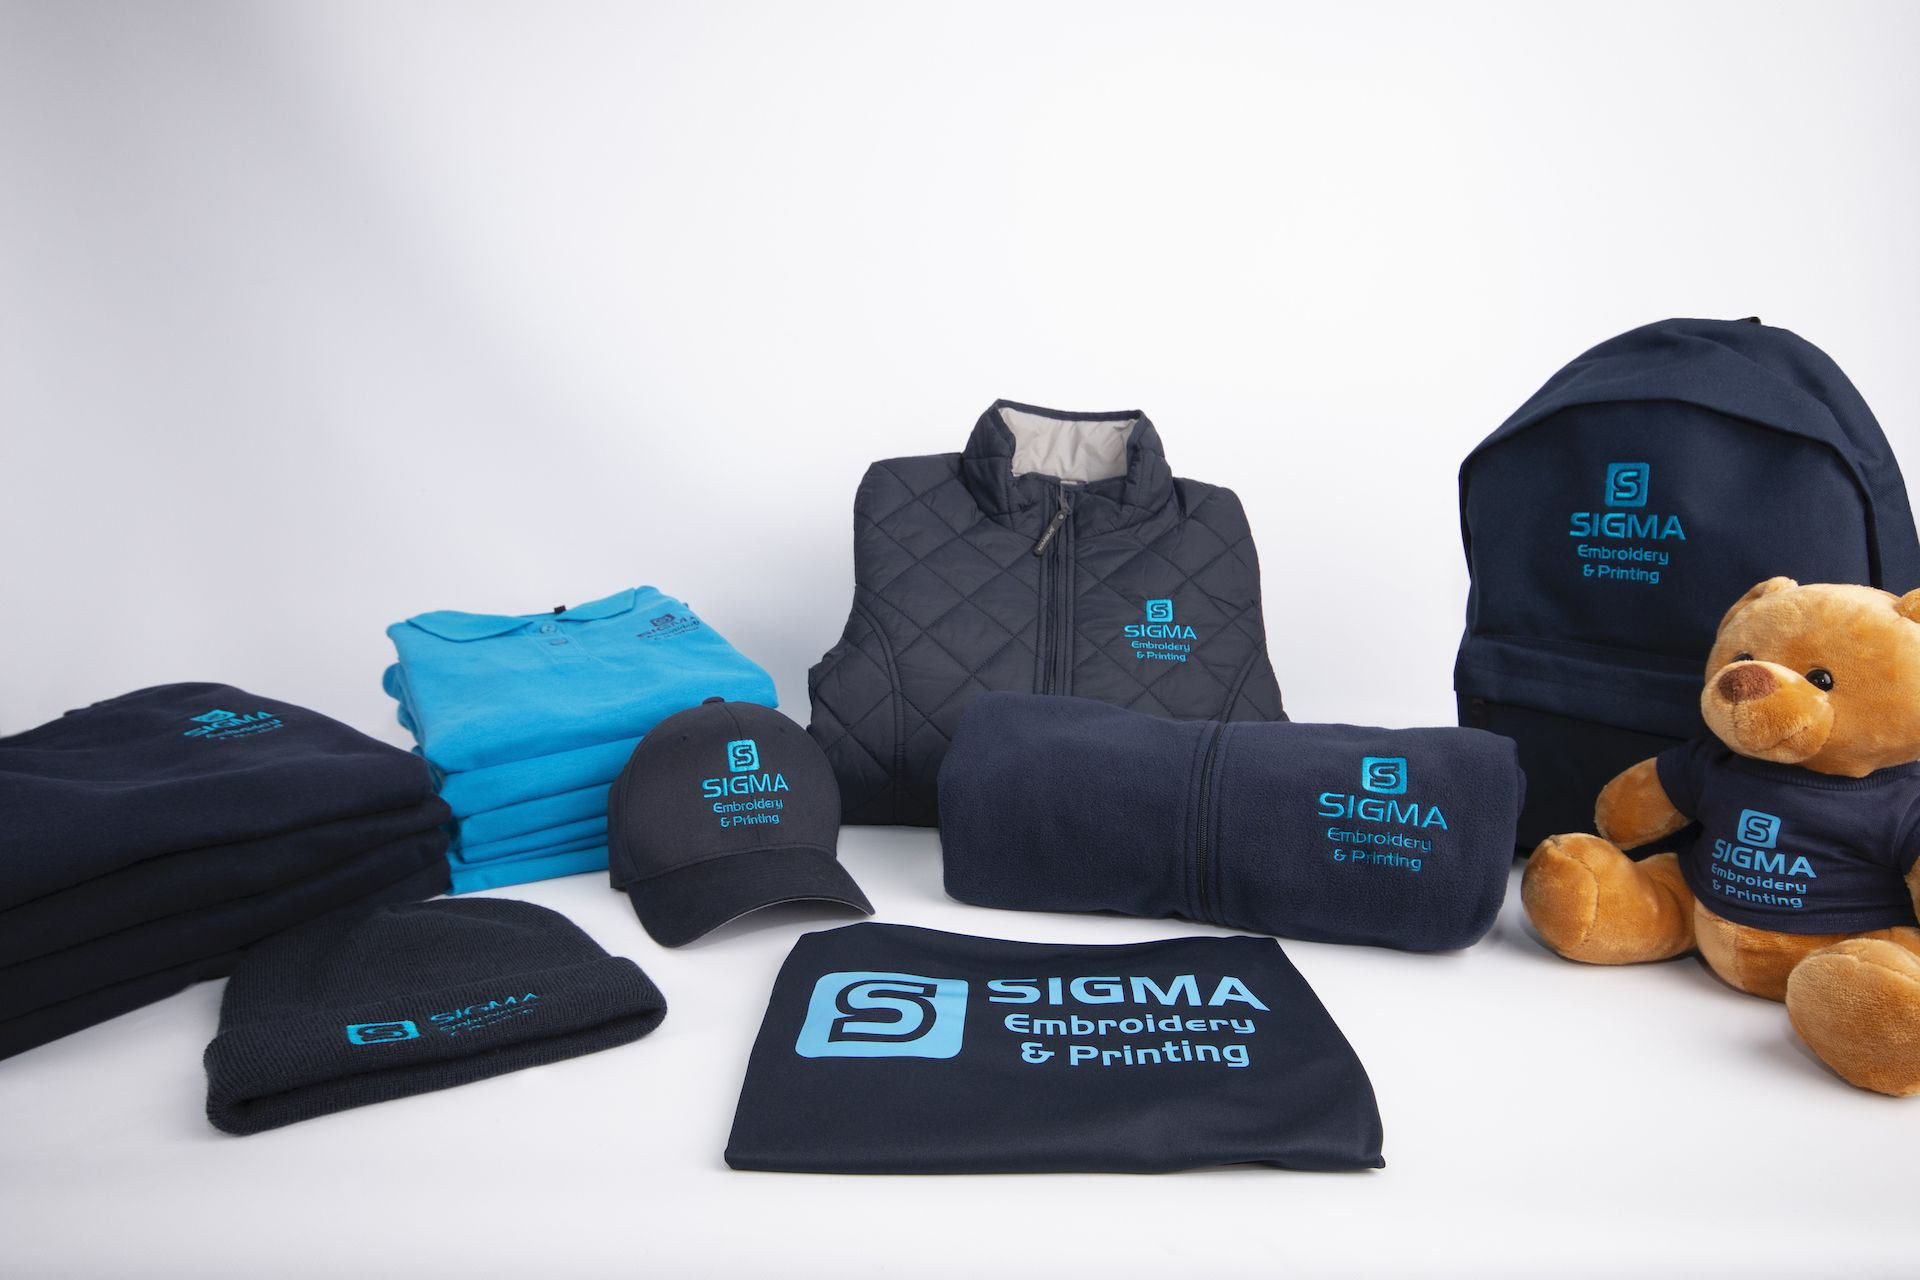 Sigma Branded clothing